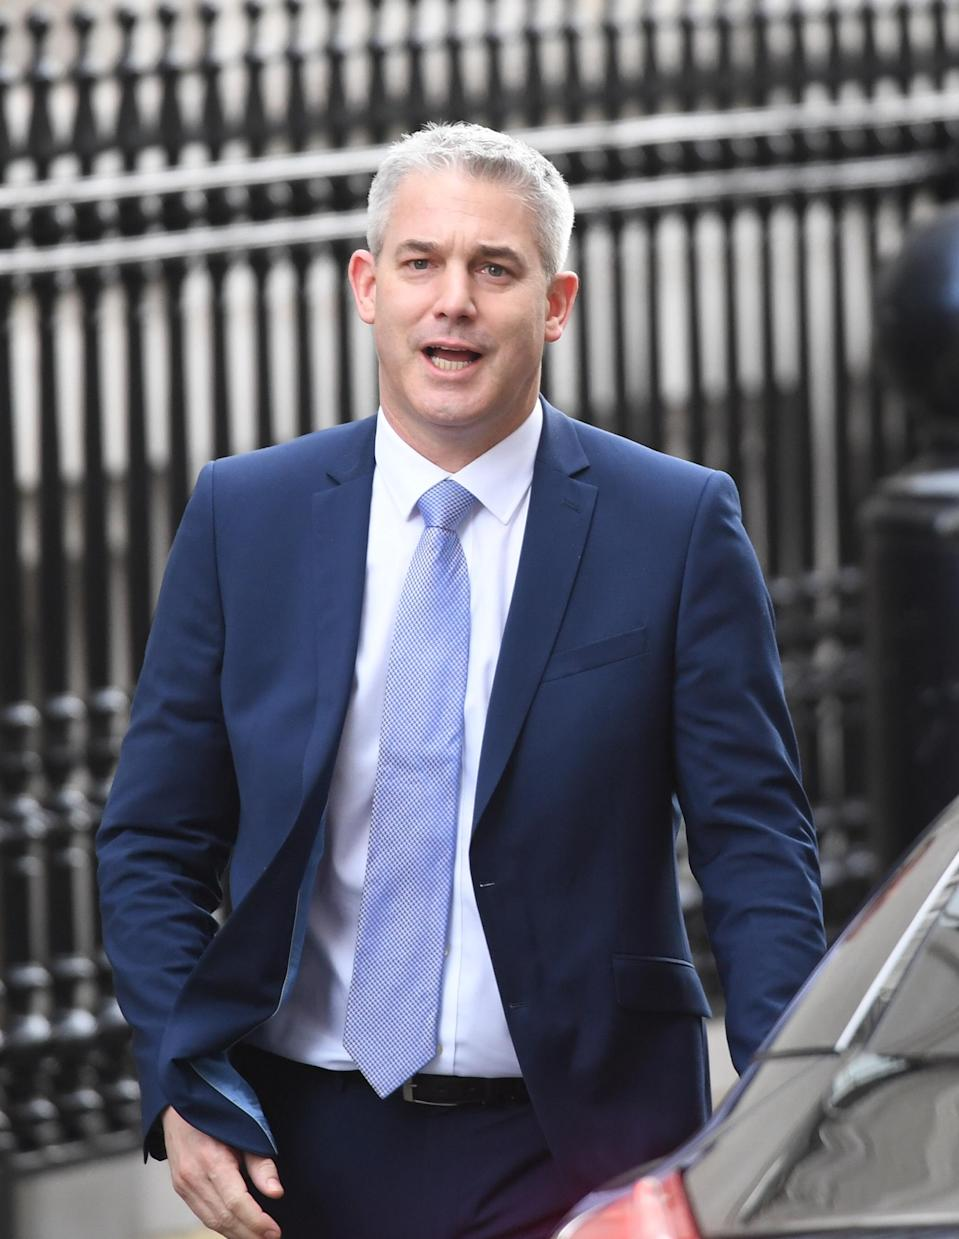 Brexit Secretary Stephen Barclay leaves Downing Street ahead of Prime Minister's Questions on Wednesday. (PA)